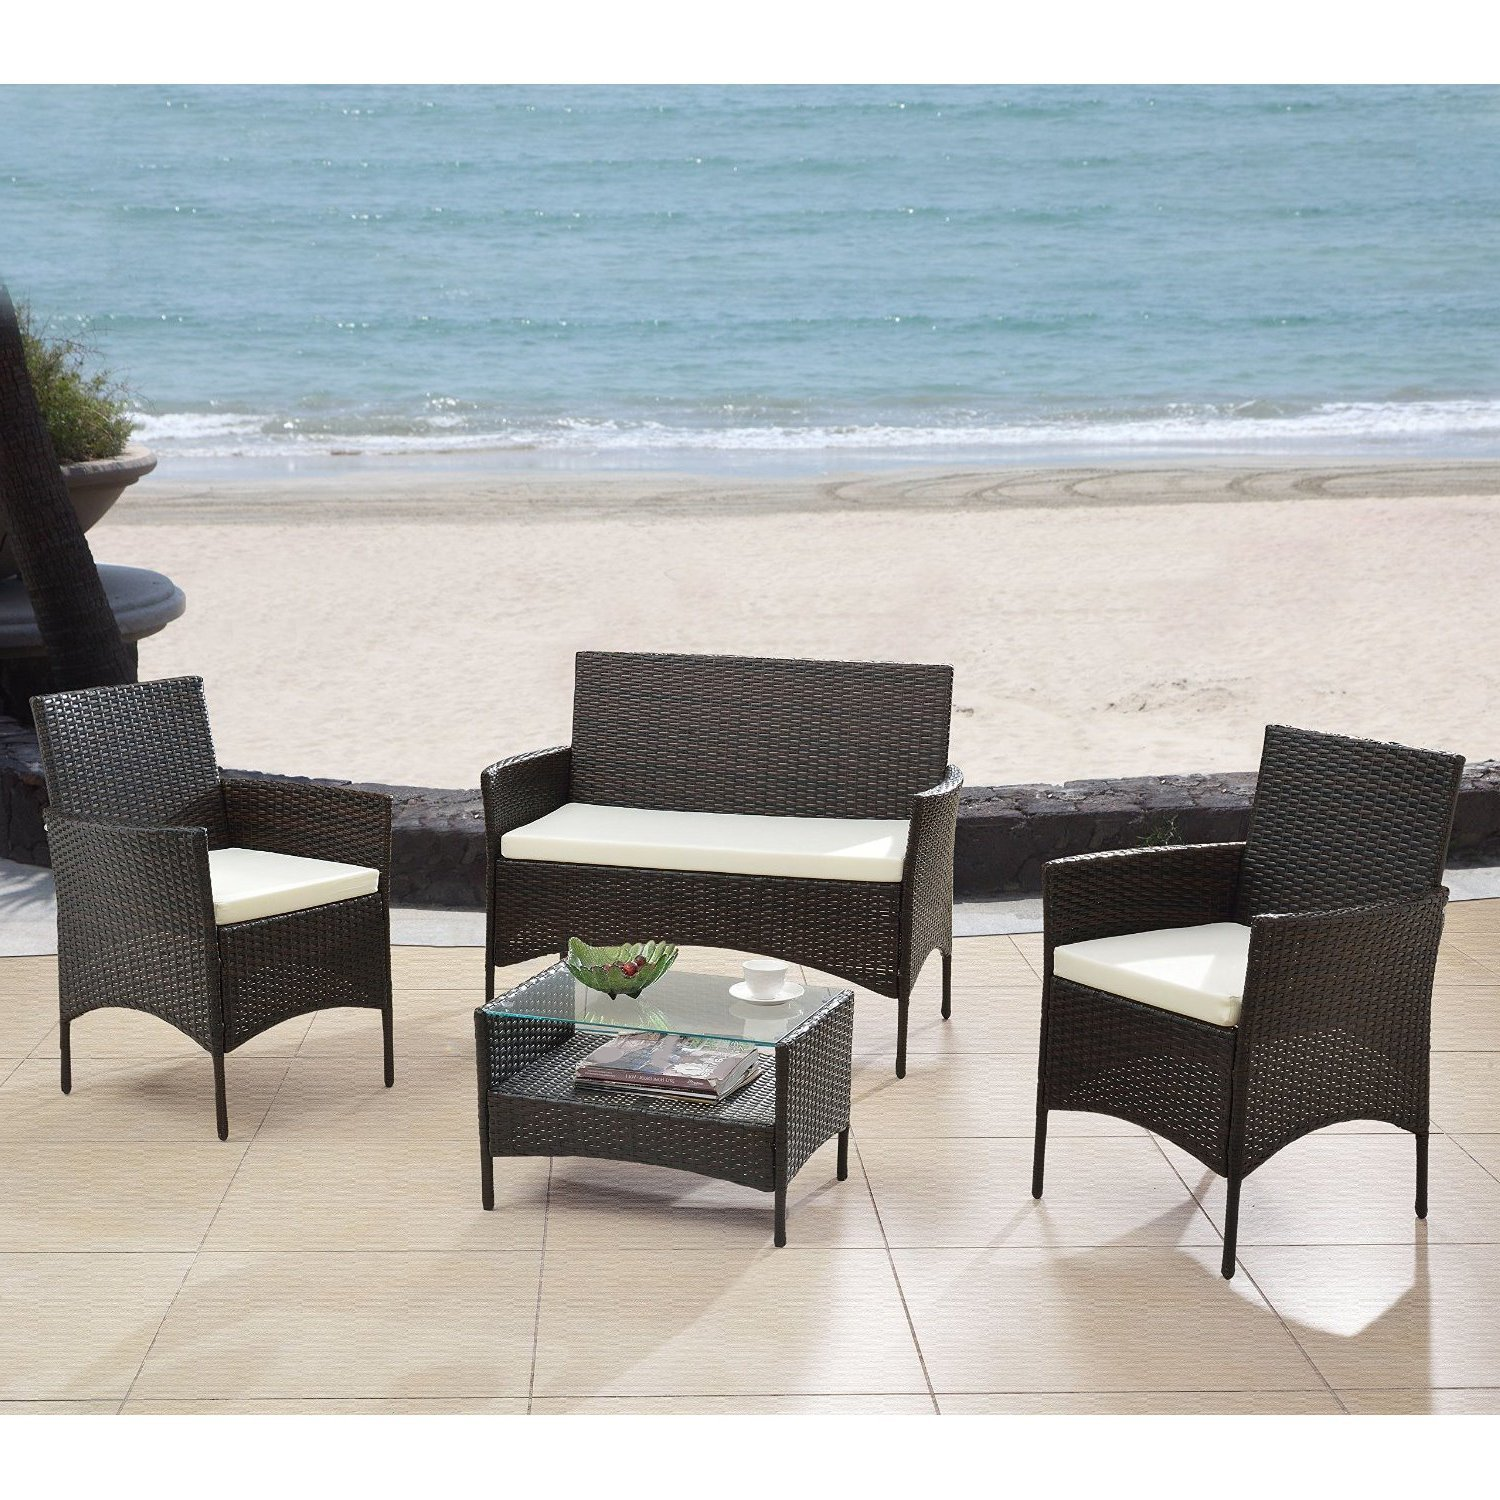 Outdoor Patio Furniture Set Cushioned 4 Pieces Wicker Patio Set Table, Two Chairs and a Double Sofa Espresso Finish with Beige Cushions Outdoor Furniture Lawn Rattan Garden Set